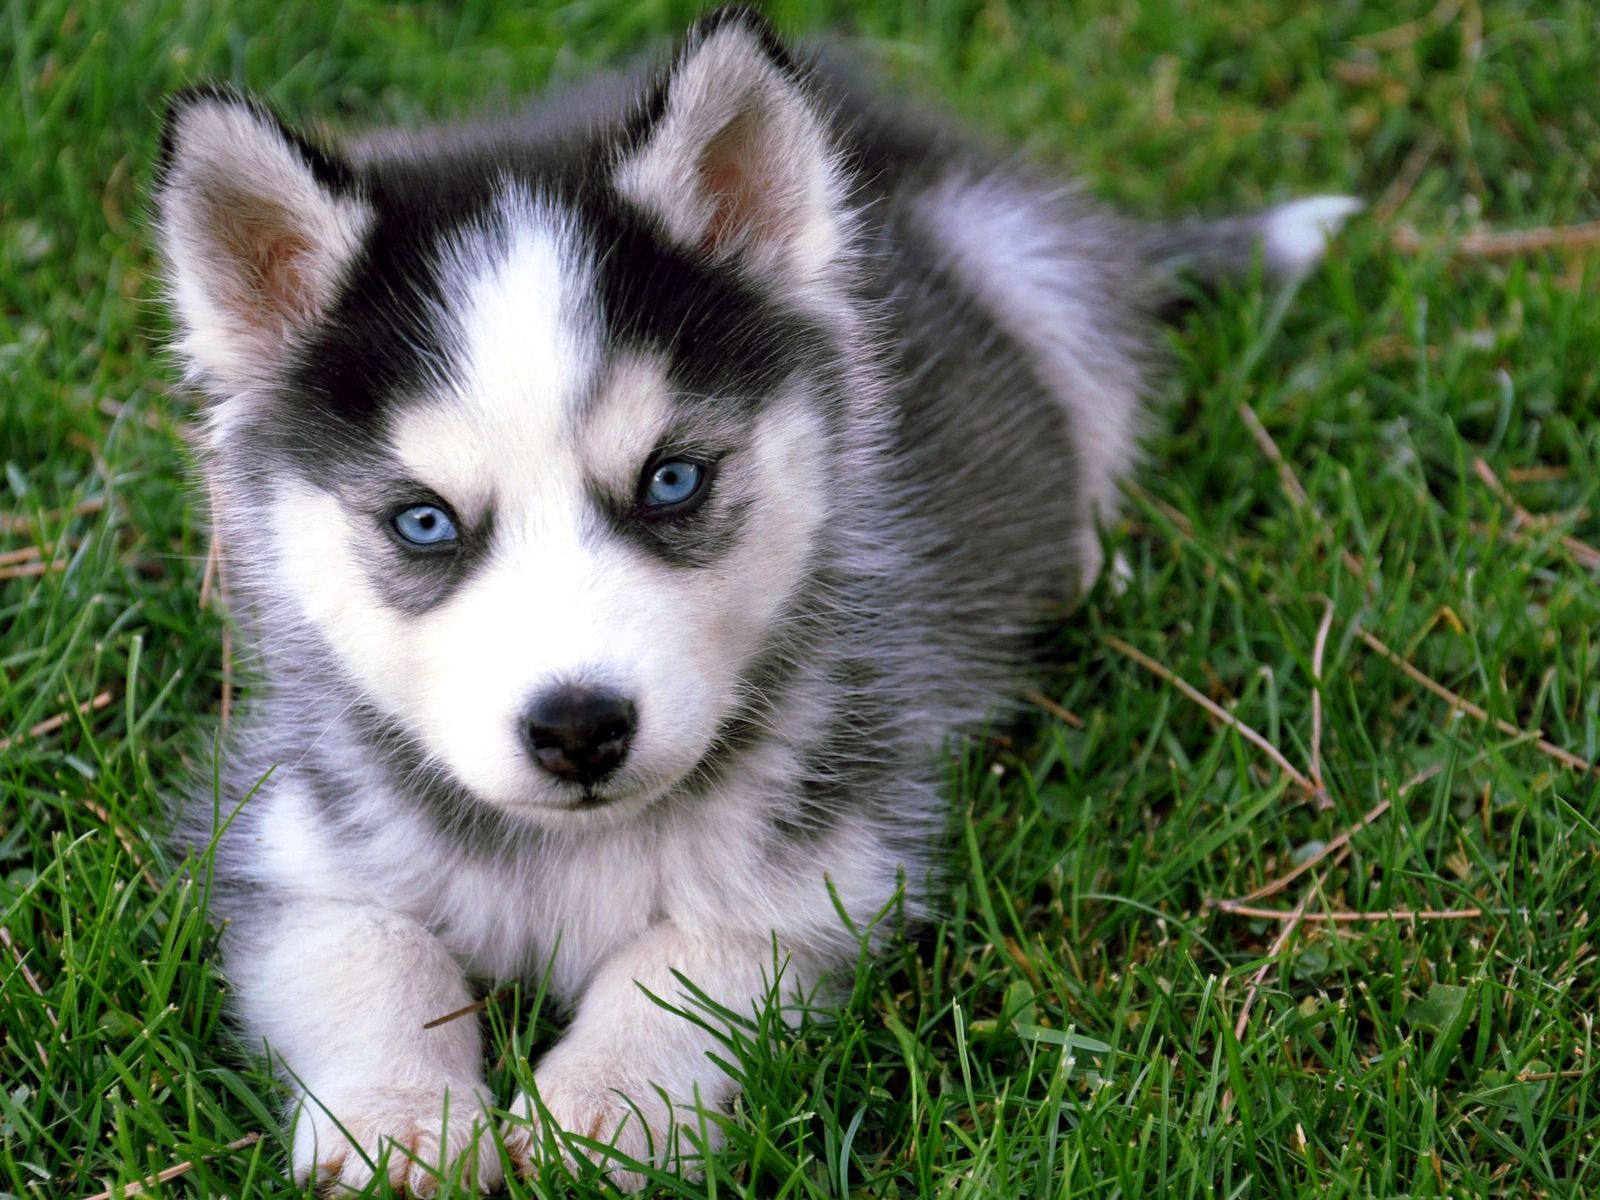 Wolf hybrid puppies for sale in ohio - Siberian Husky Would Love To Have Another One Some Day